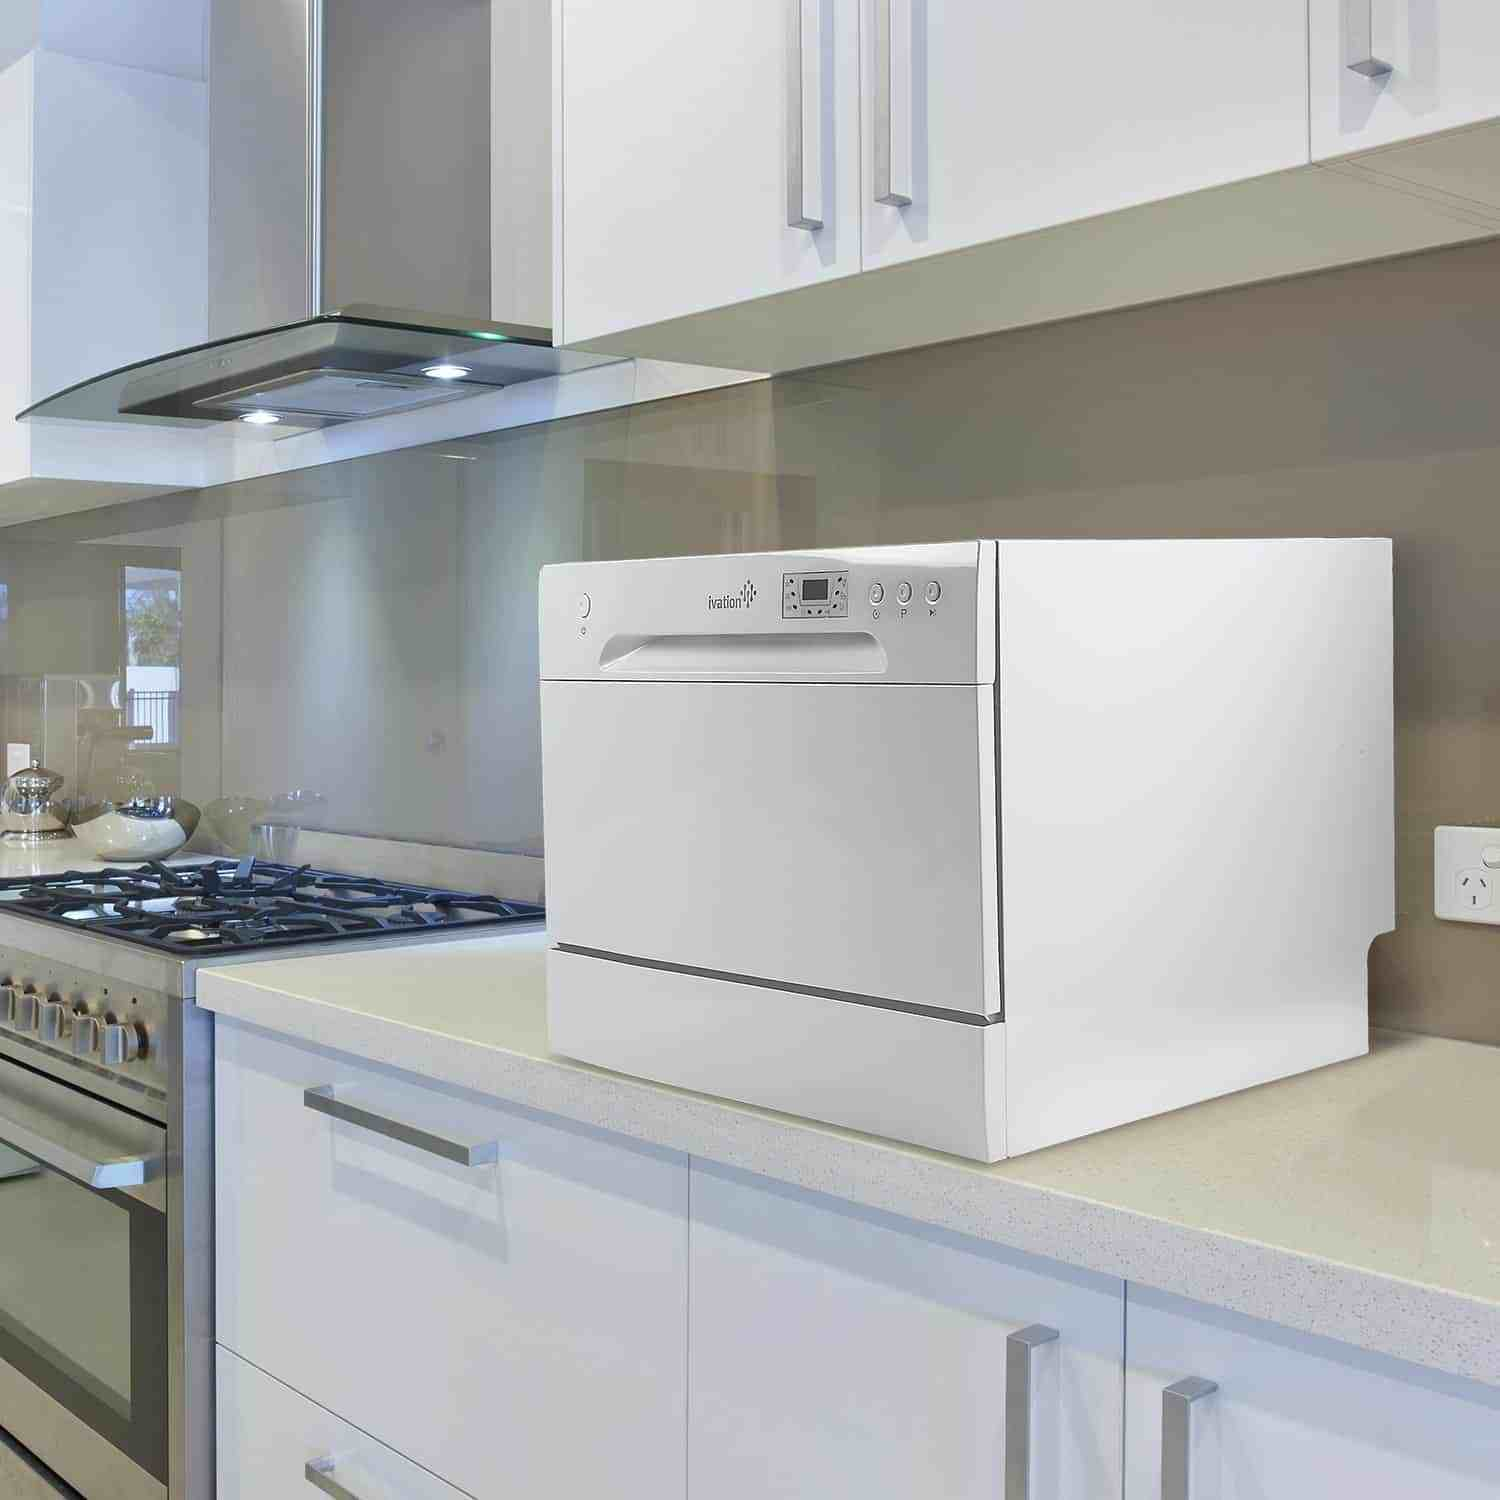 Best Dishwashers for Rental Properties 2020